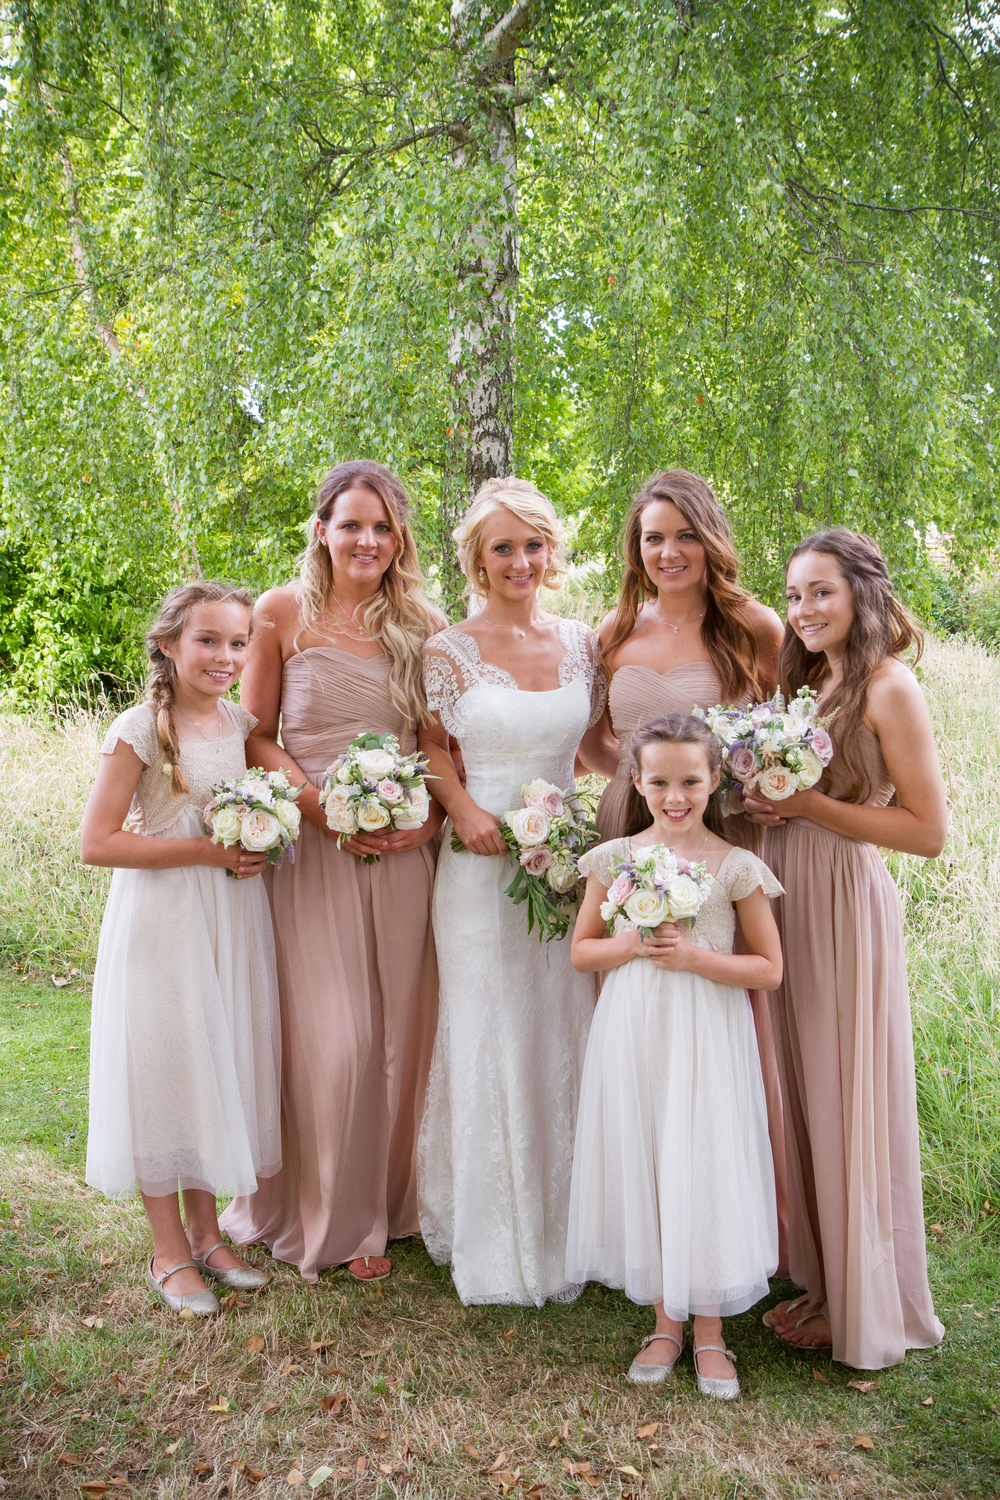 Emily and her bridesmaids - July 2016